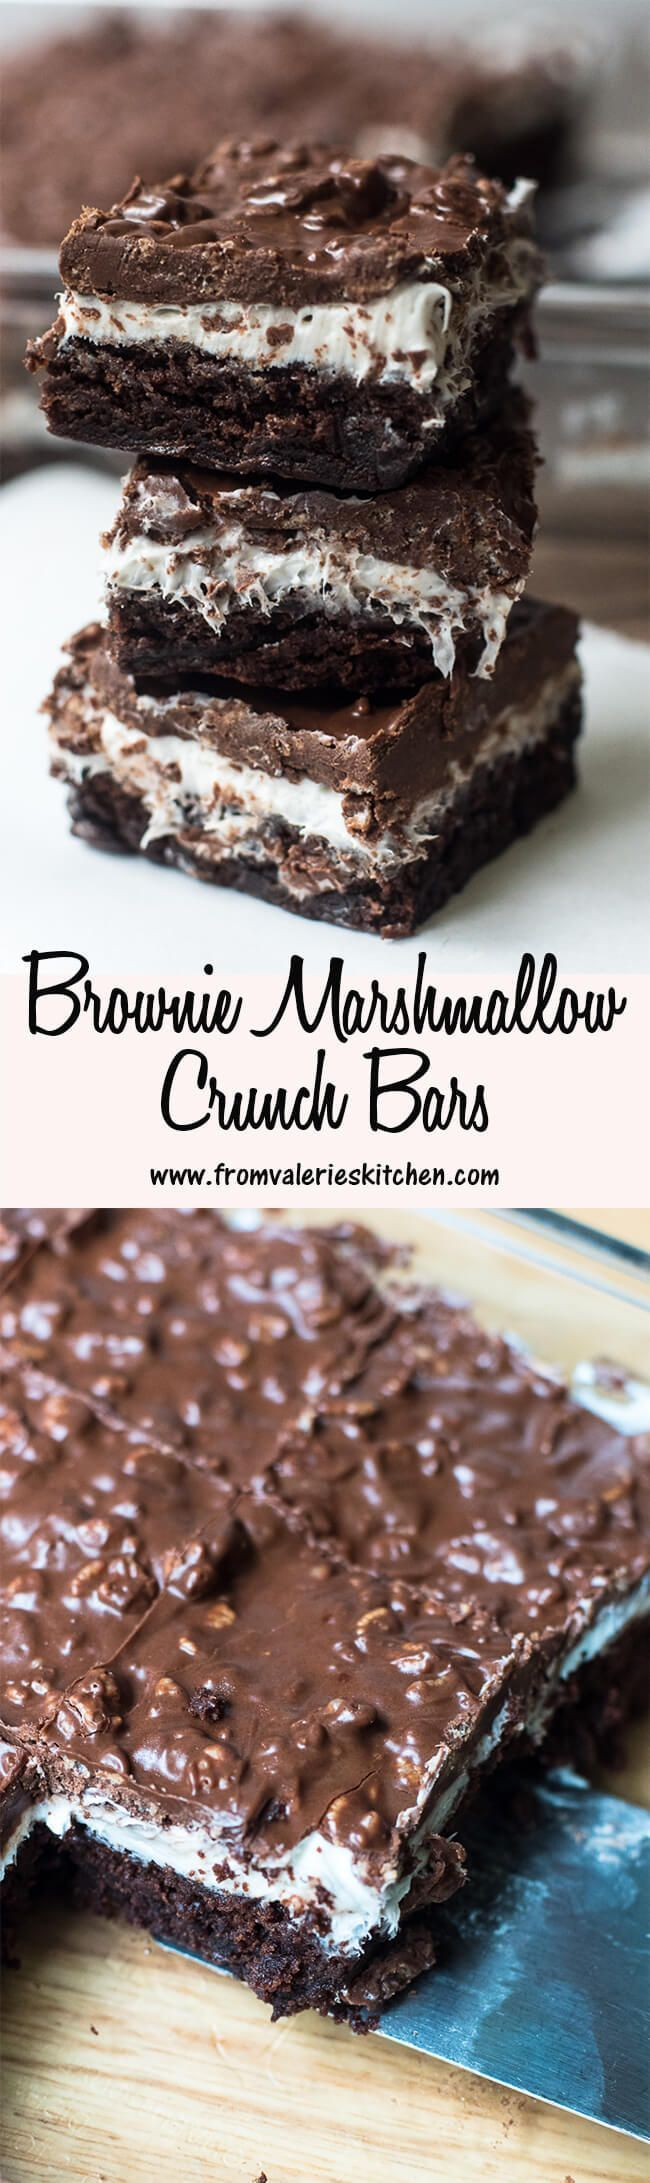 Brownie Marshmallow Crunch Bars ~ www.fromvaleriesk....... ** See even more by visiting the photo